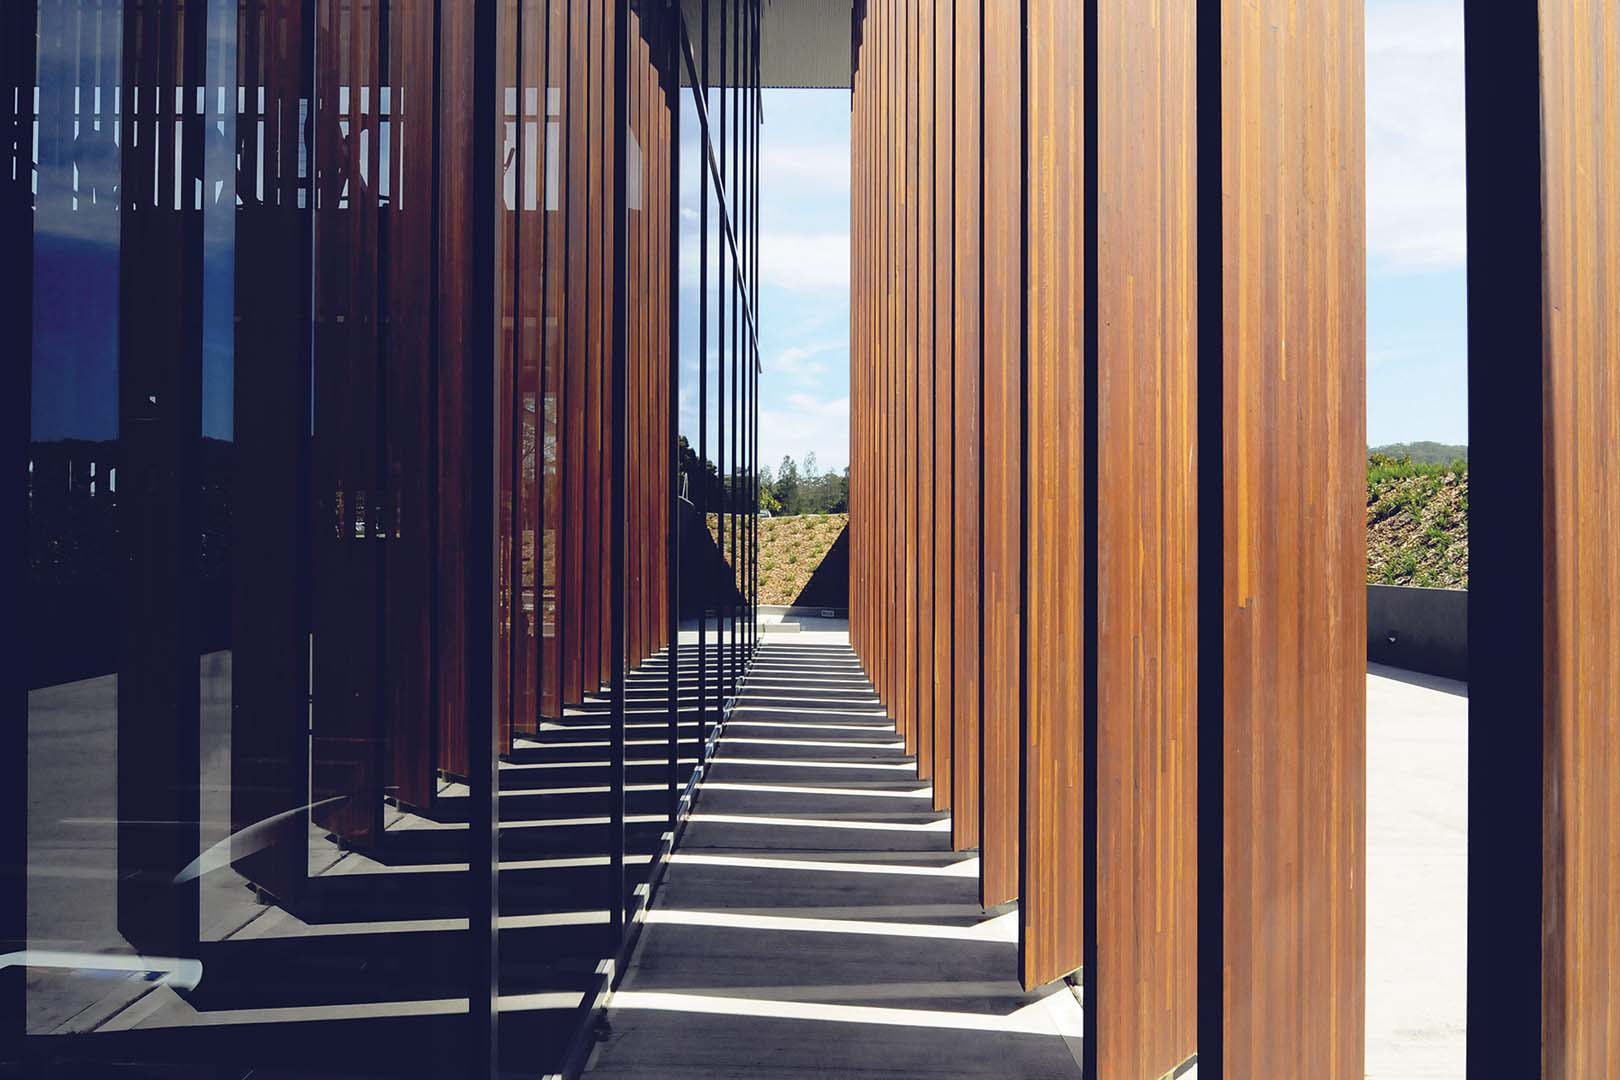 case study the australian cladding company A case study of student and teacher relationships and the effect on student learning by patricia brady gablinske a dissertation submitted in partial fulfillment of the.